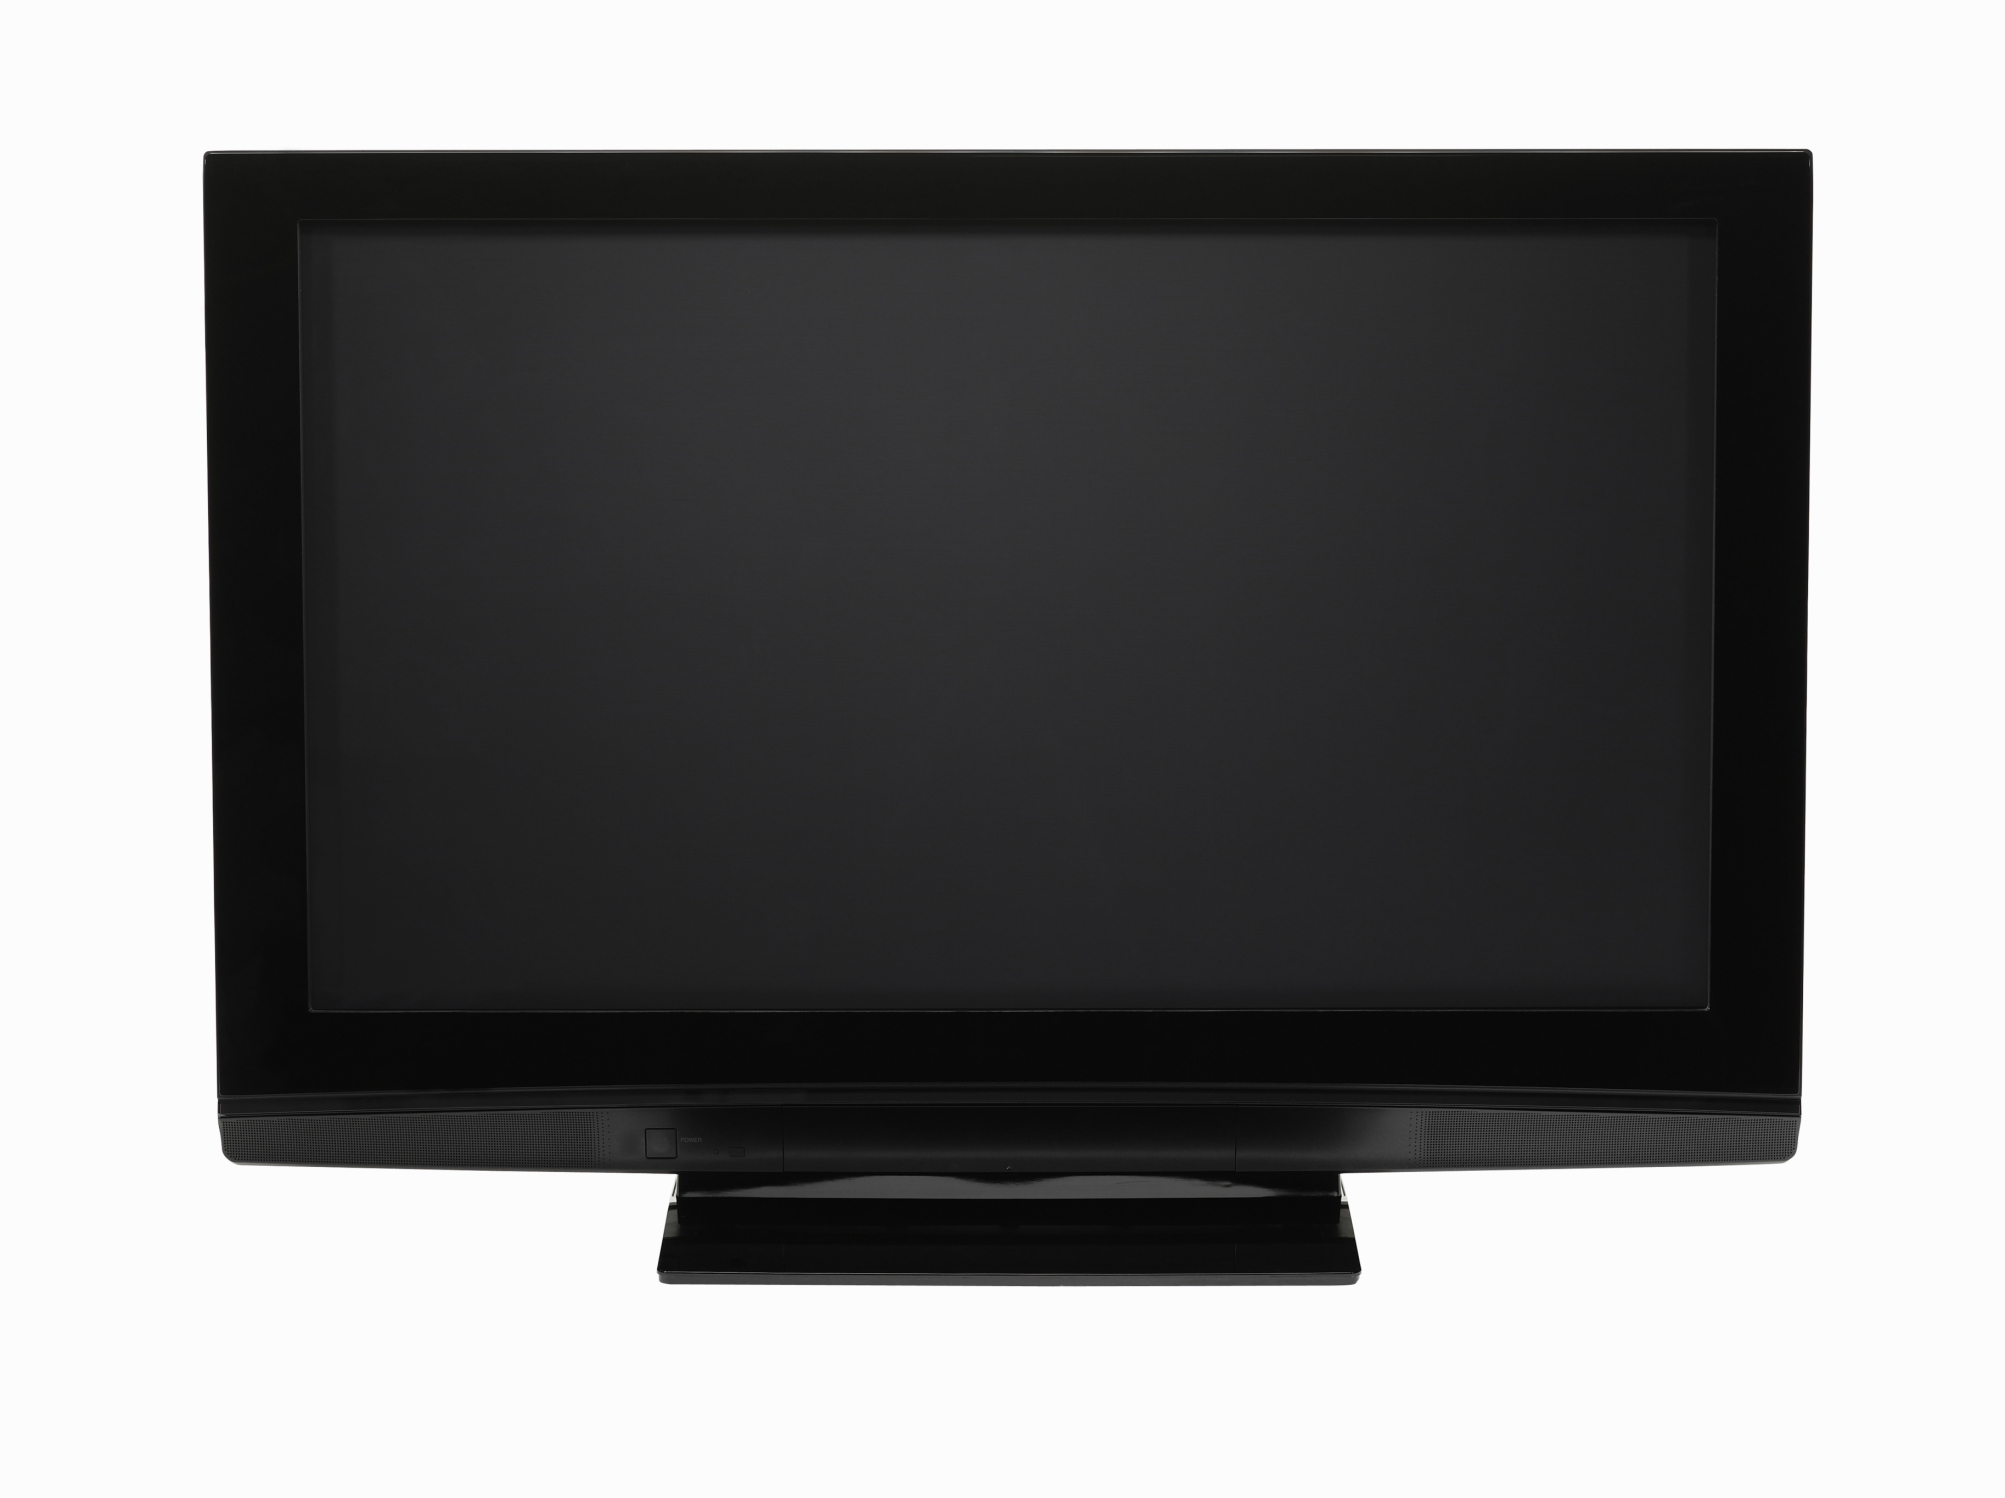 How to Channel Search on a Panasonic Viera | It Still Works